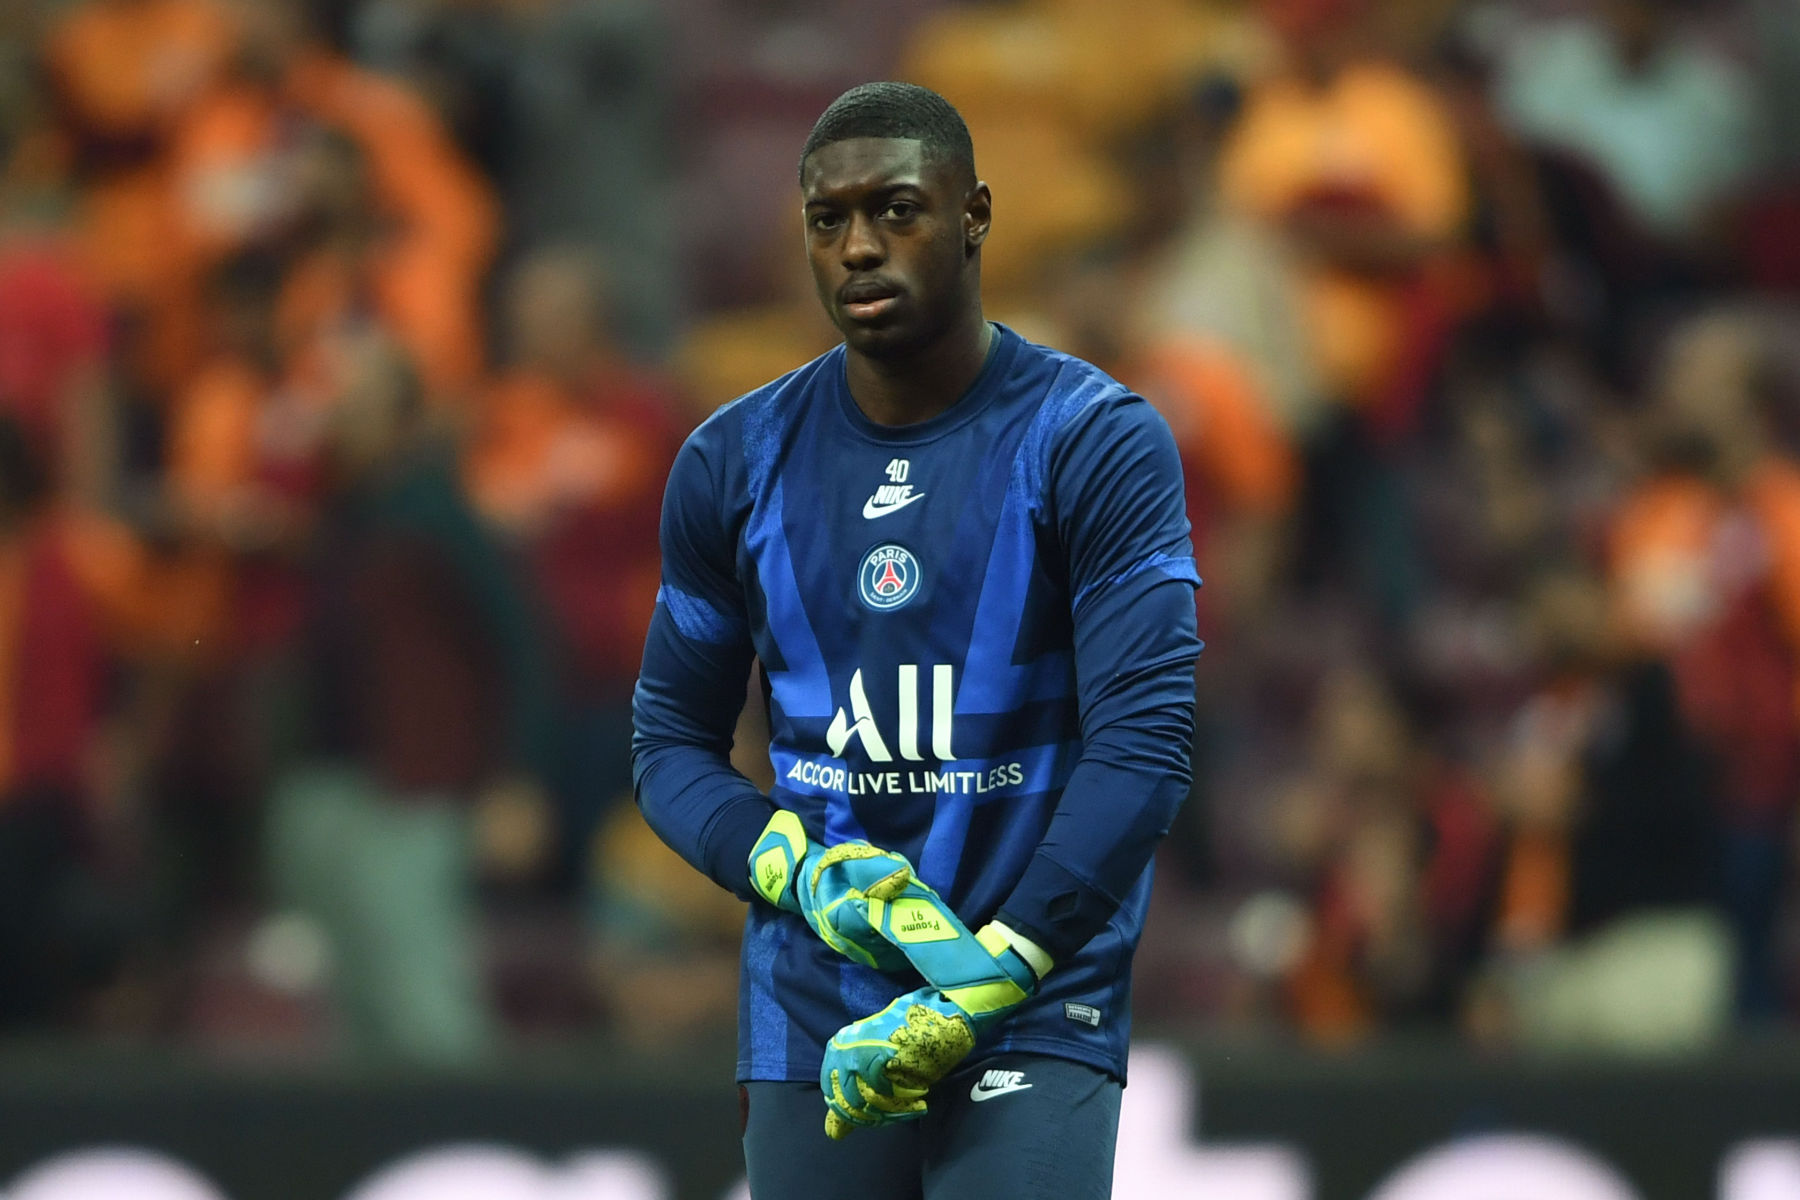 Report: PSG to Loan Out Goalkeeper Garissone Innocent This Summer - PSG Talk